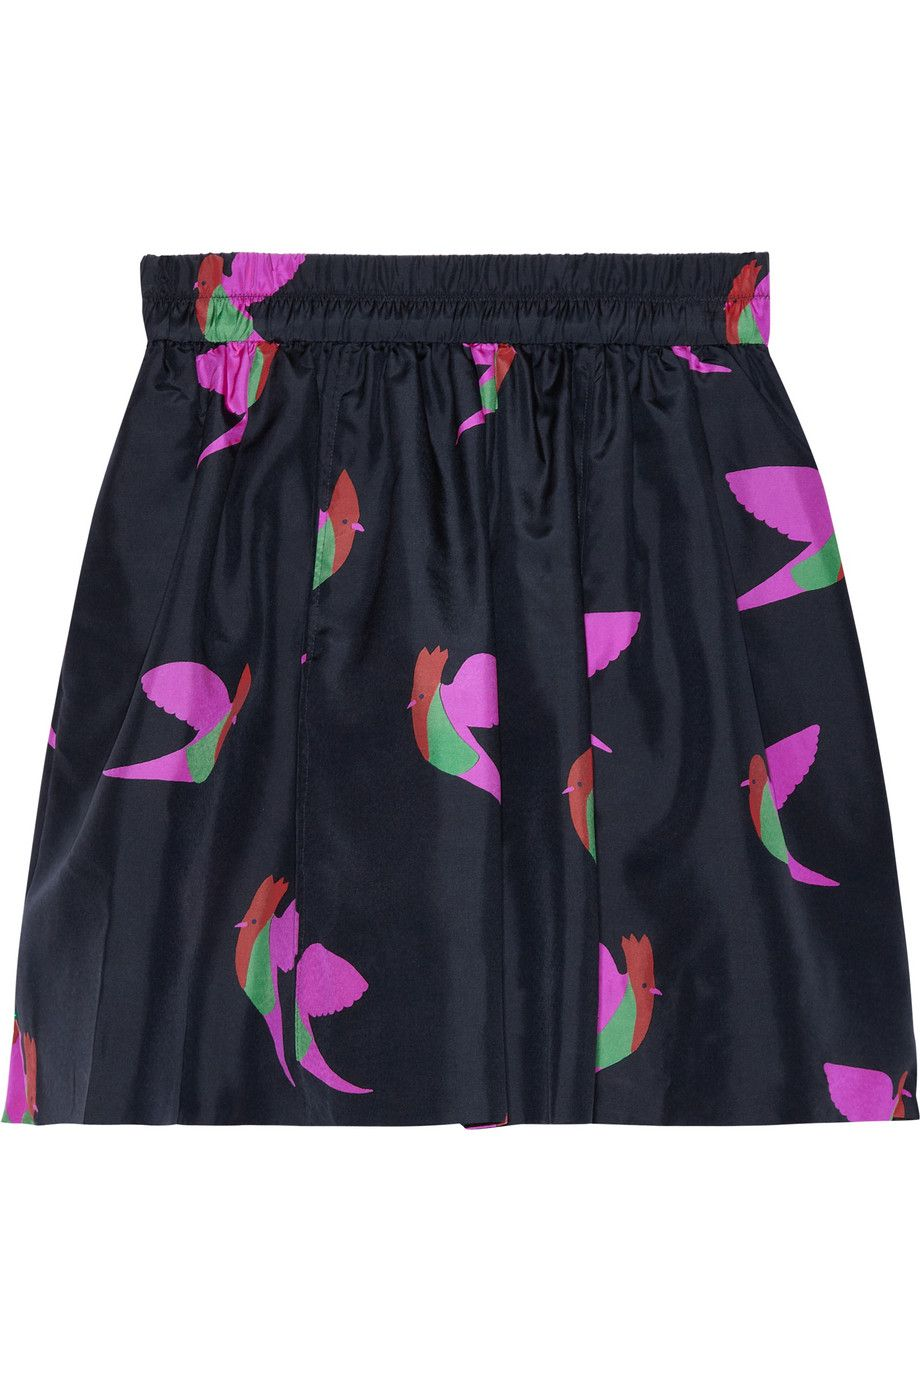 silk-taffeta skirt from Marc by Marc Jacobs